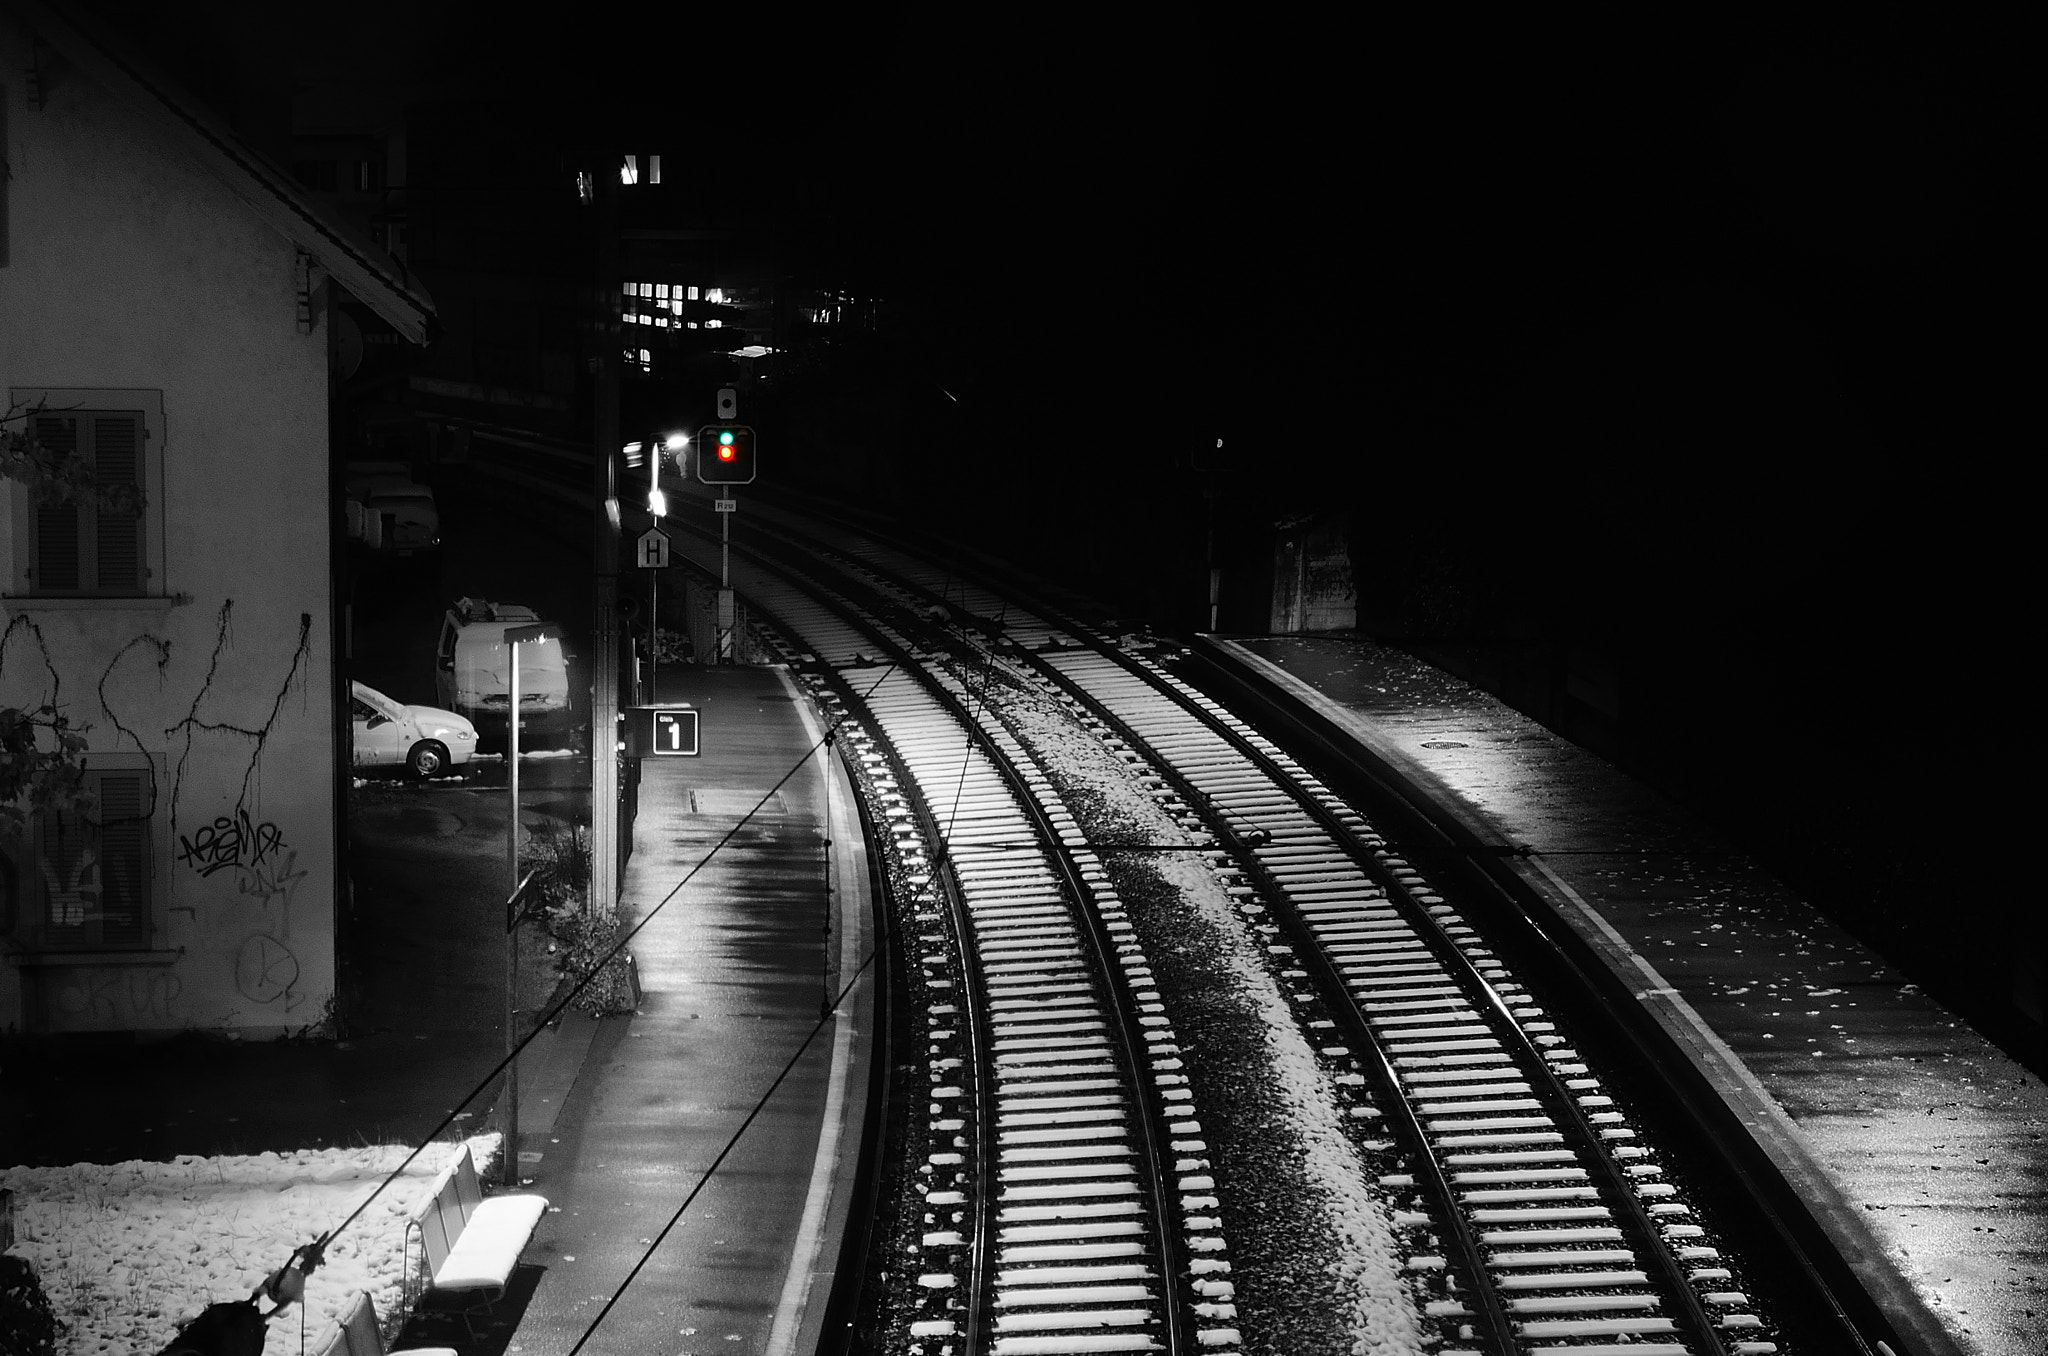 Photograph Tracks by Markus Speth on 500px